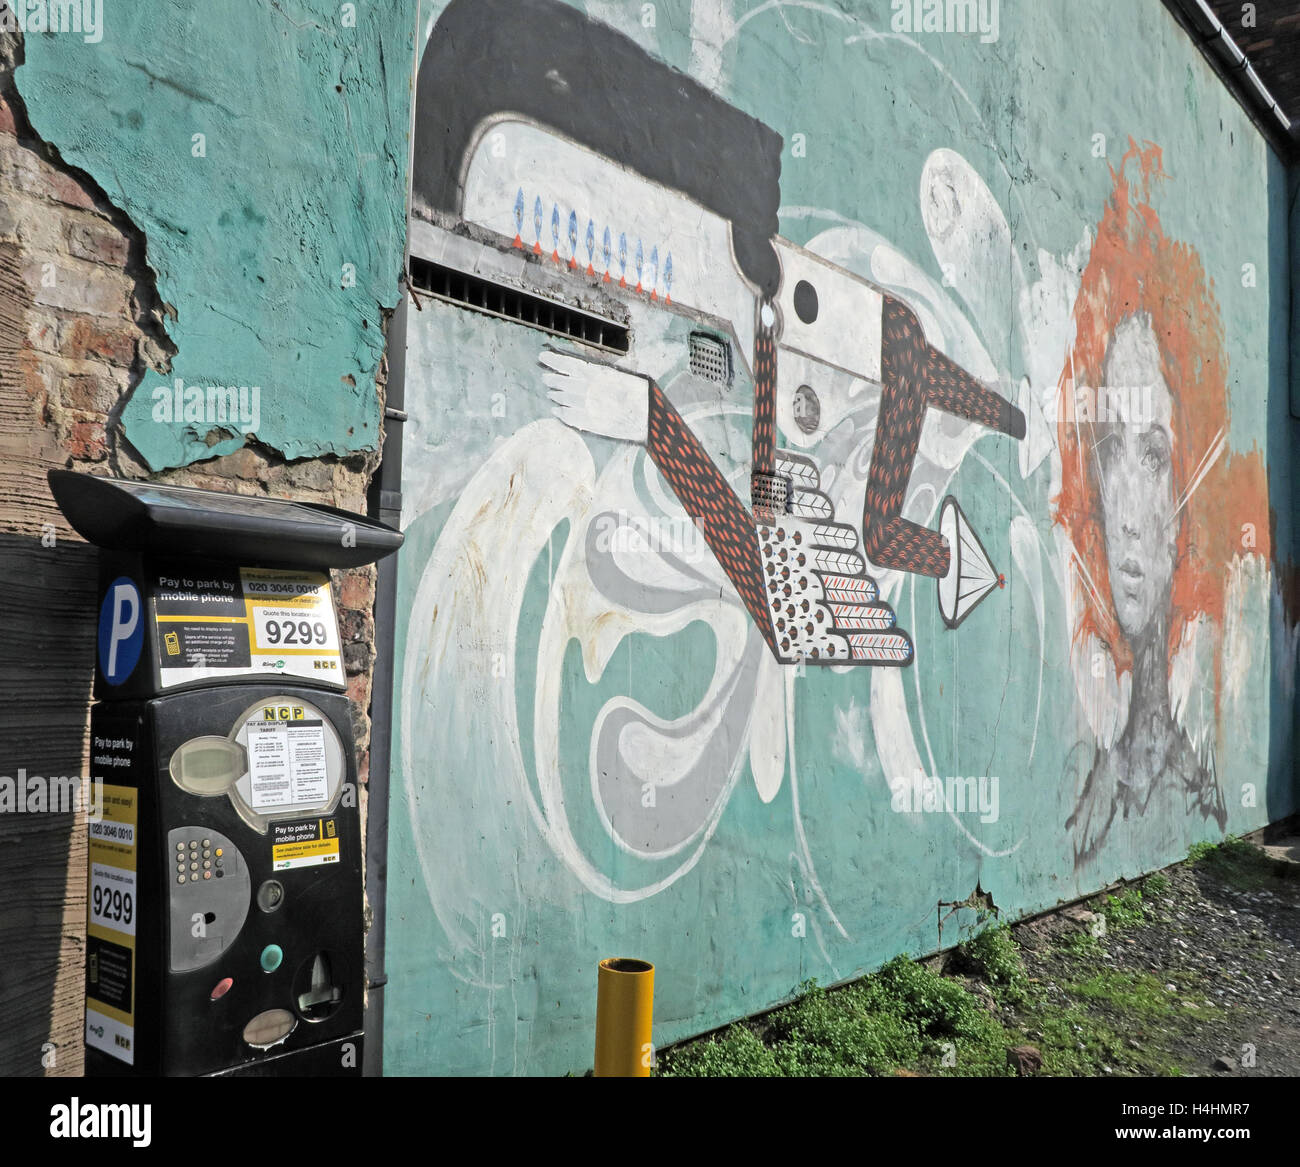 Graffiti Art Smithfield/Tithebarn St,Liverpool,England,UK - with parking machine - Stock Image